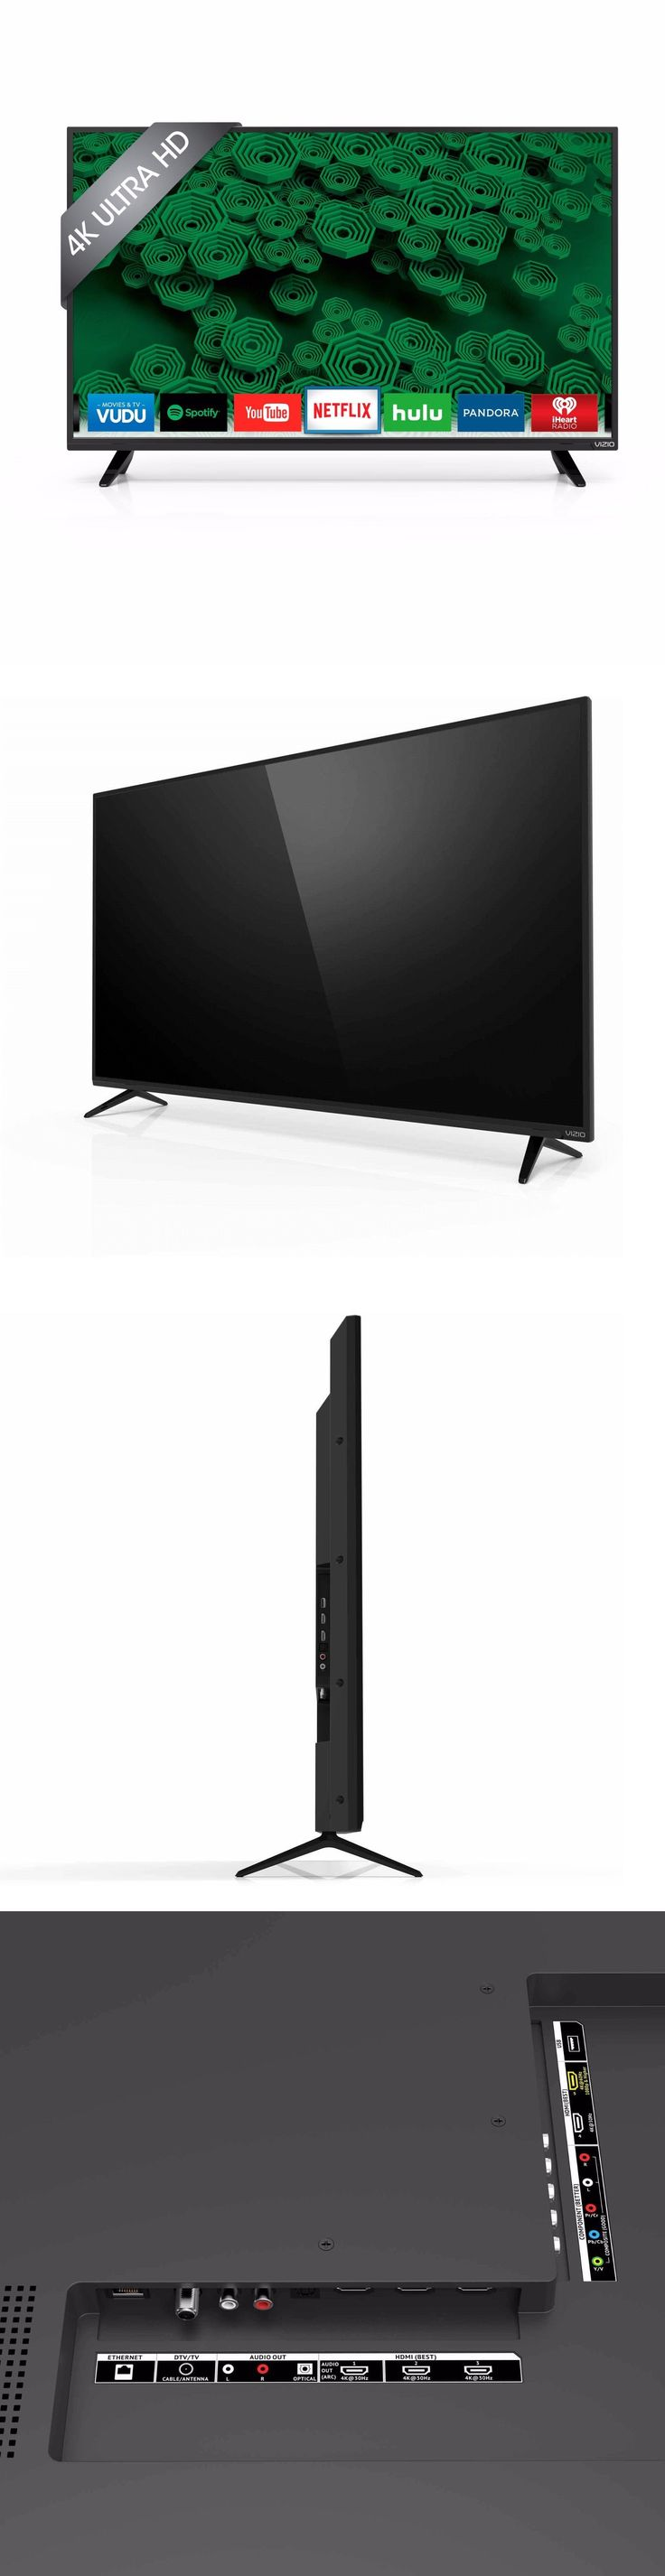 Televisions: Vizio Led D40u-D1 40 Inch Smart 4K Ultra Hd Tv 2160P 120Hz D-Series Full Array BUY IT NOW ONLY: $345.0